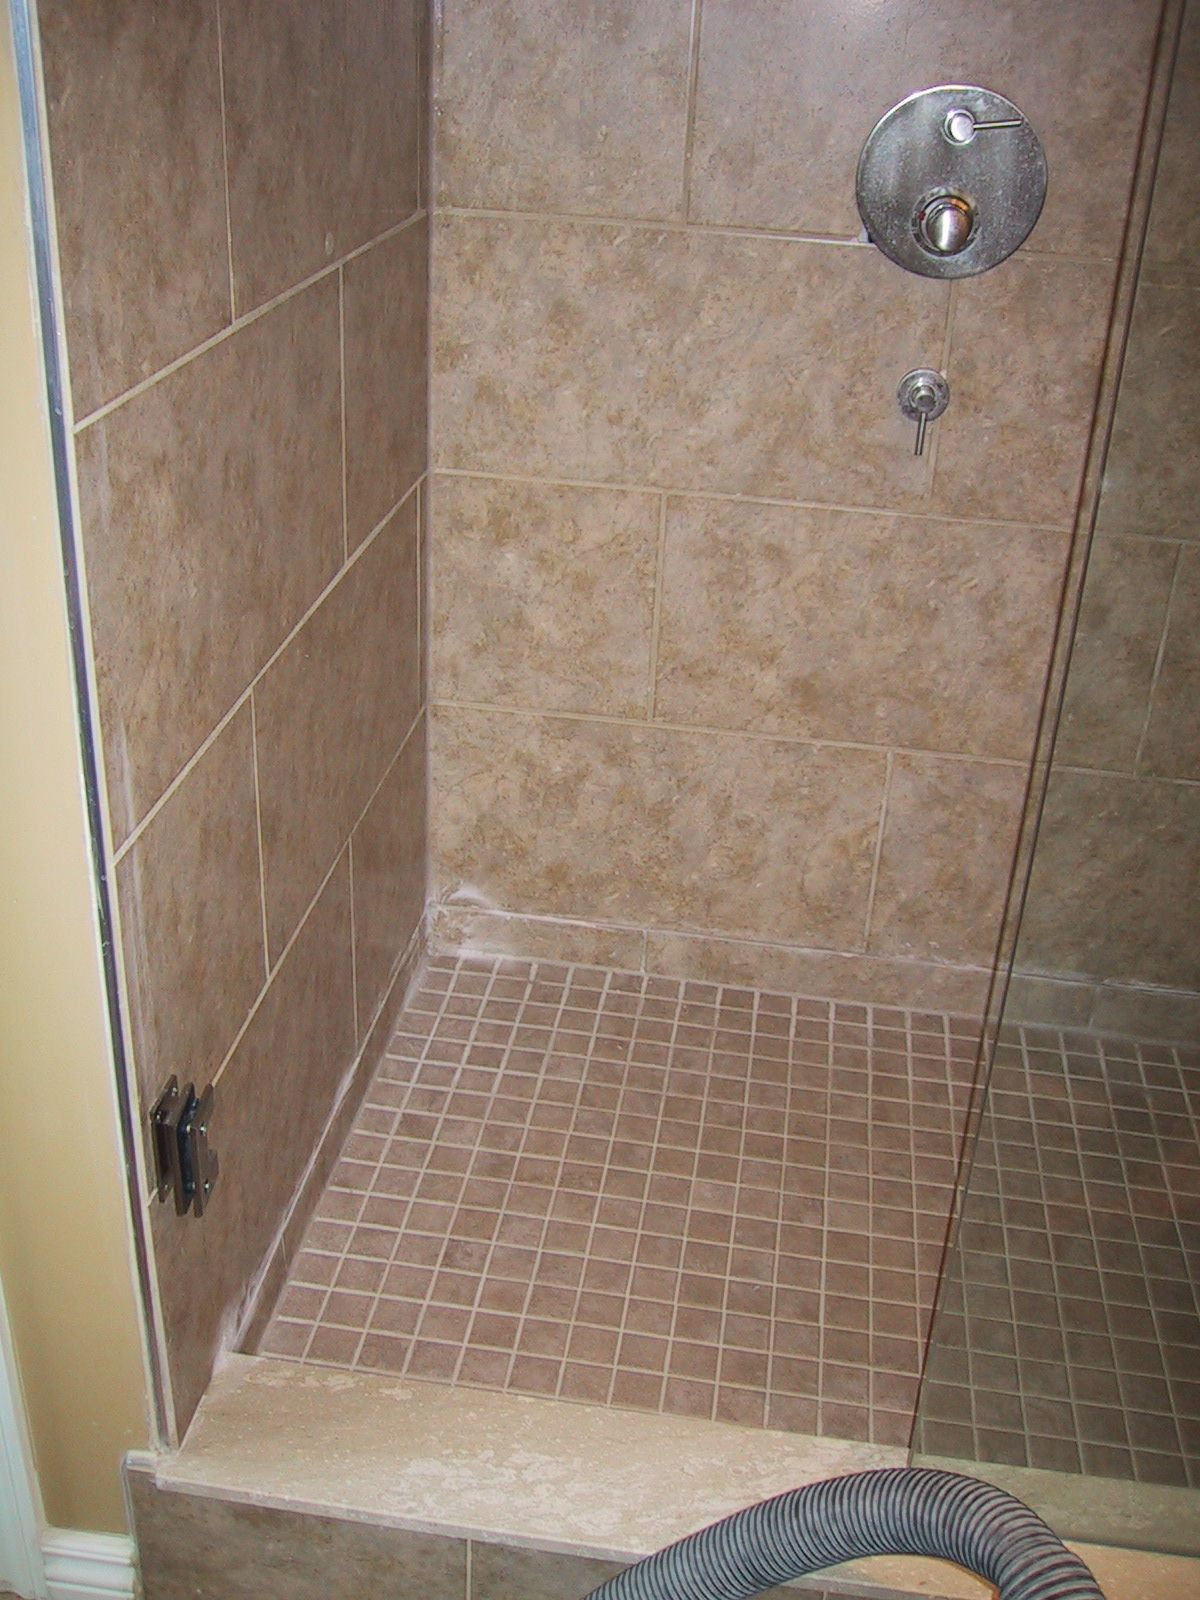 Tile bathroom walls over drywall archiehome bathrooms pinterest bathroom stall bathroom What sheetrock to use in bathroom